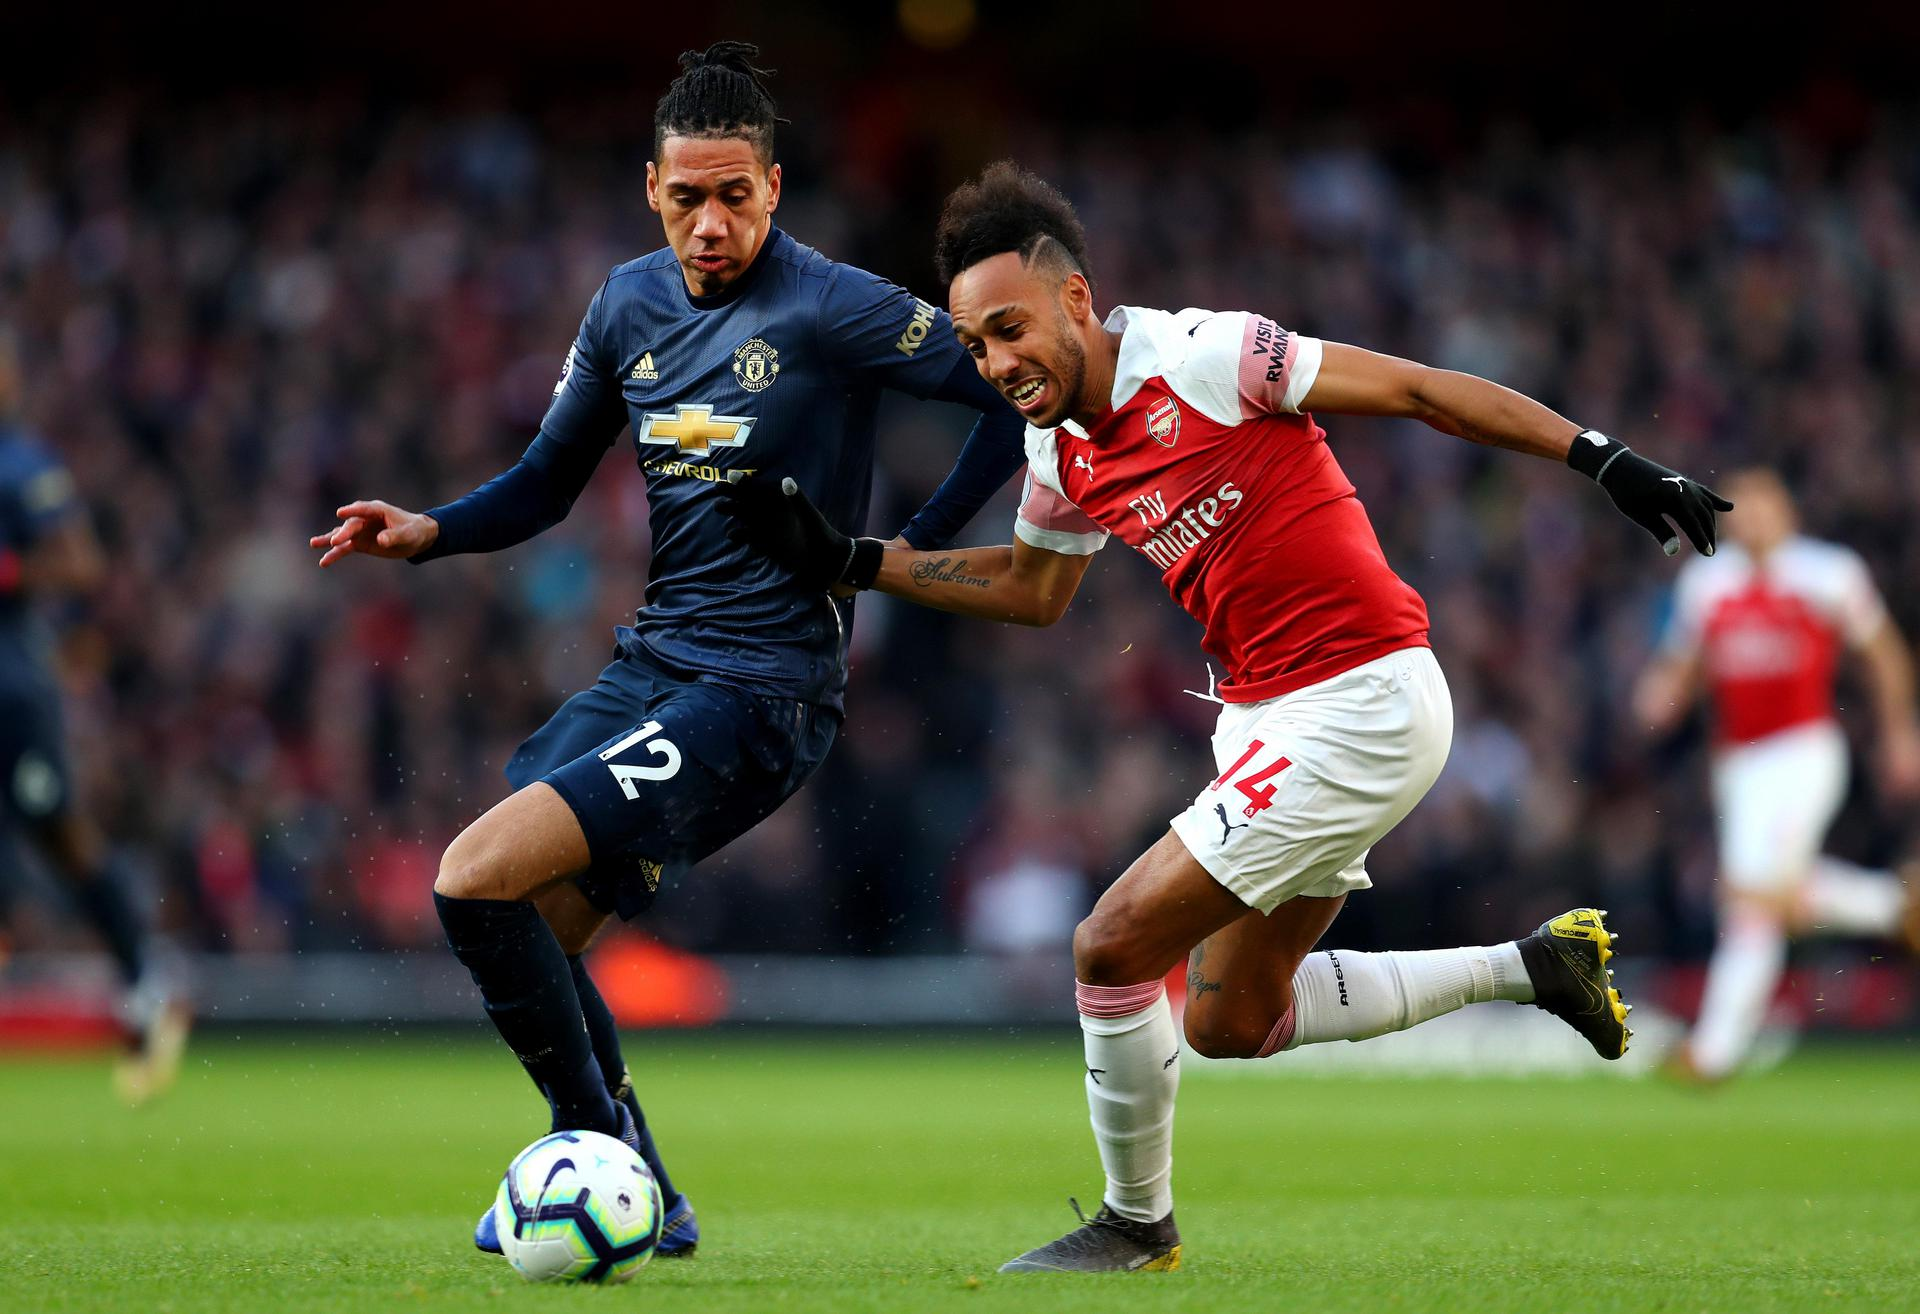 Chris Smalling battles with Pierre-Emerick Aubameyang